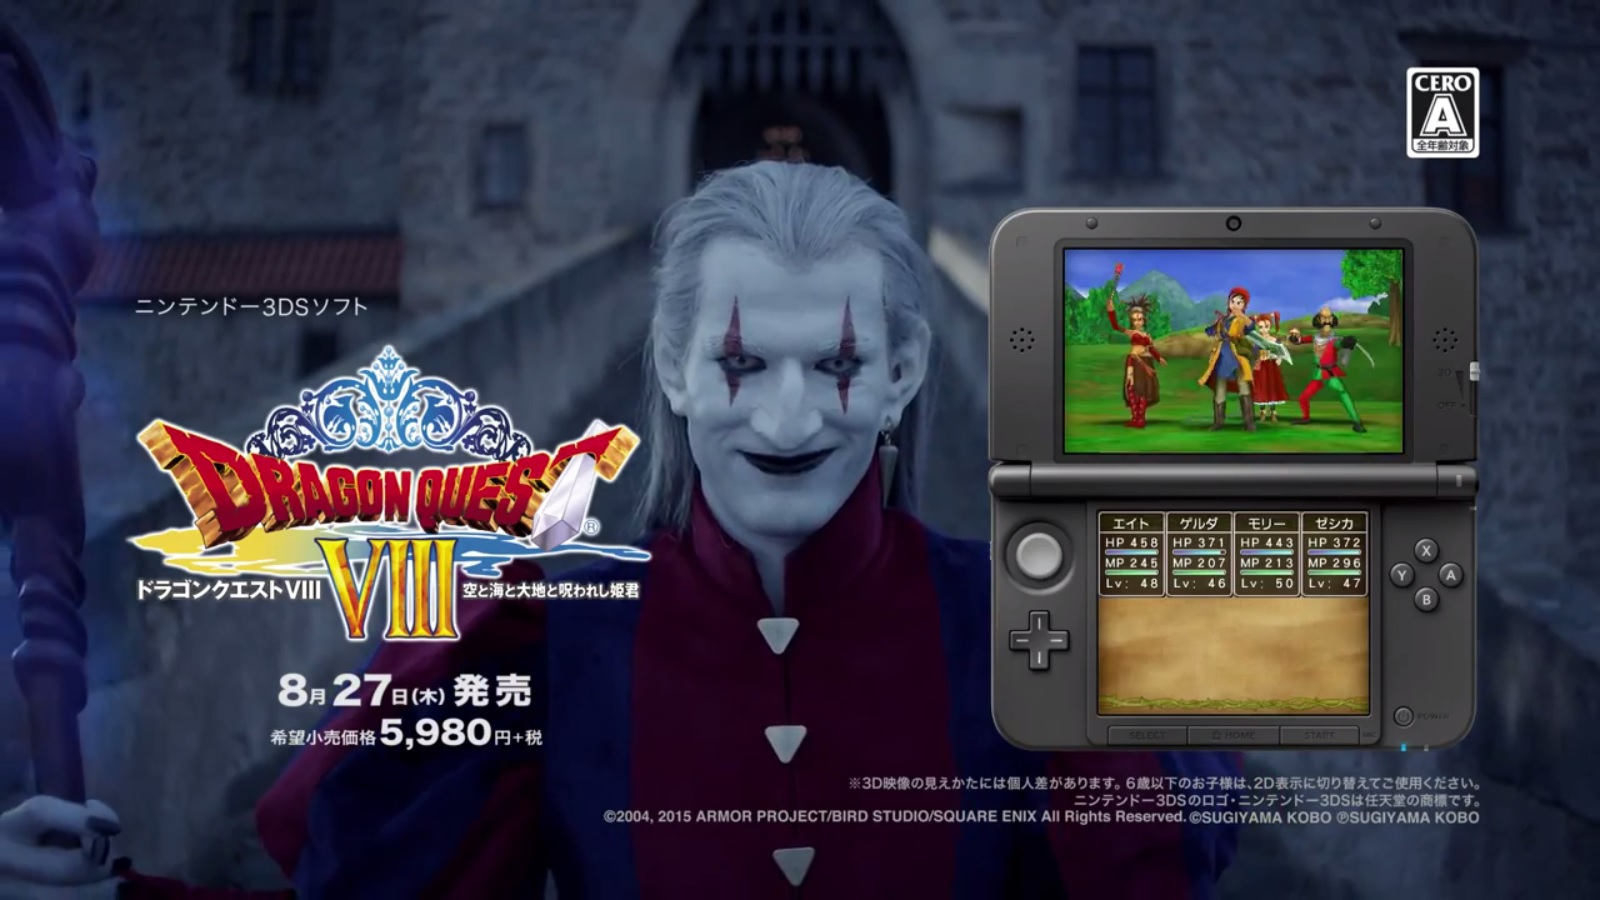 Modojo | These Dragon Quest VIII Commercials From Japan are Super Japanese